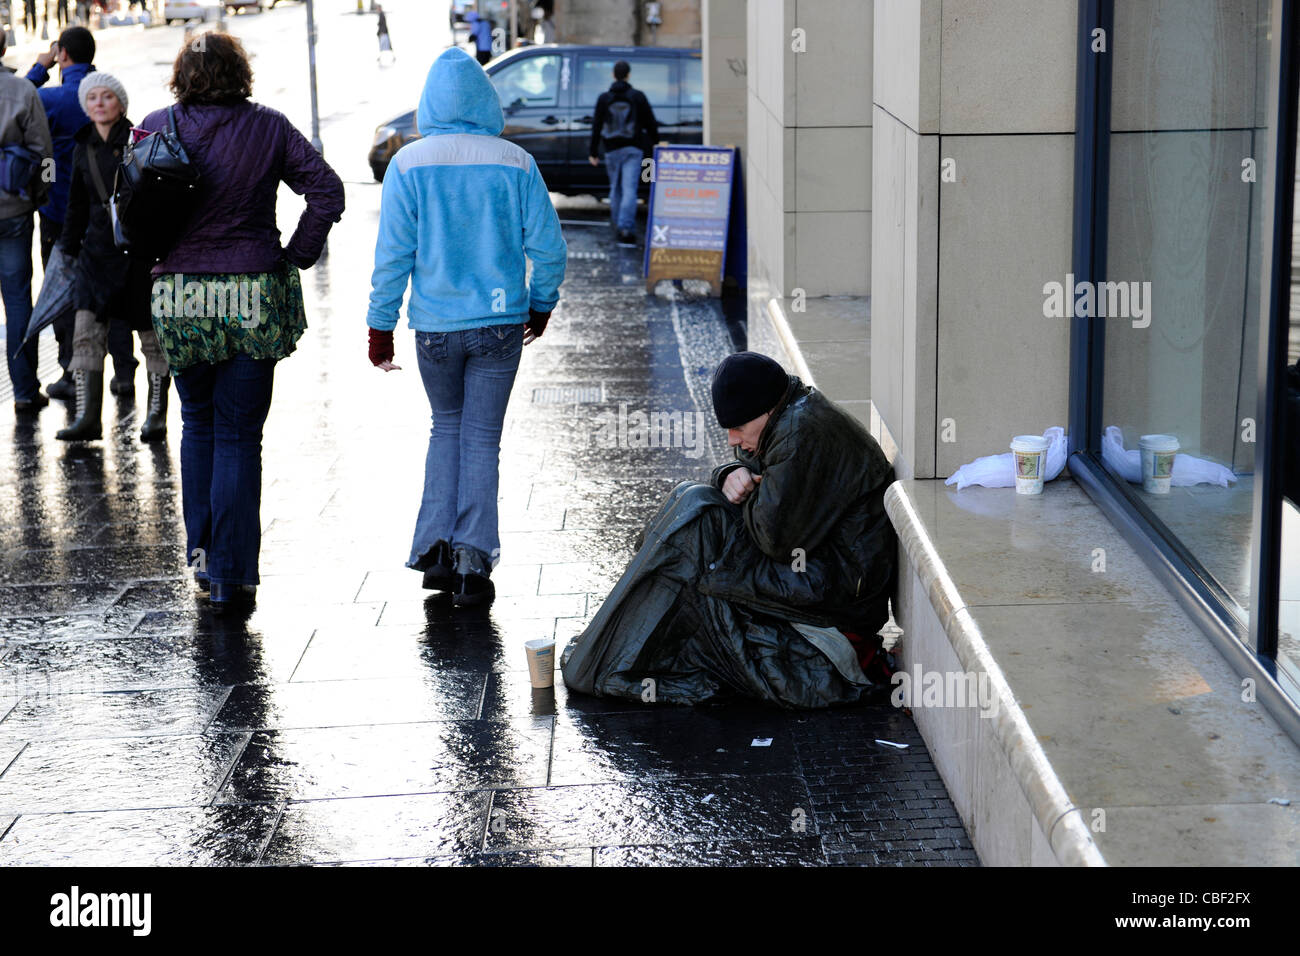 Homeless man shivers in rain while begging in Edinburgh, Scotland. - Stock Image